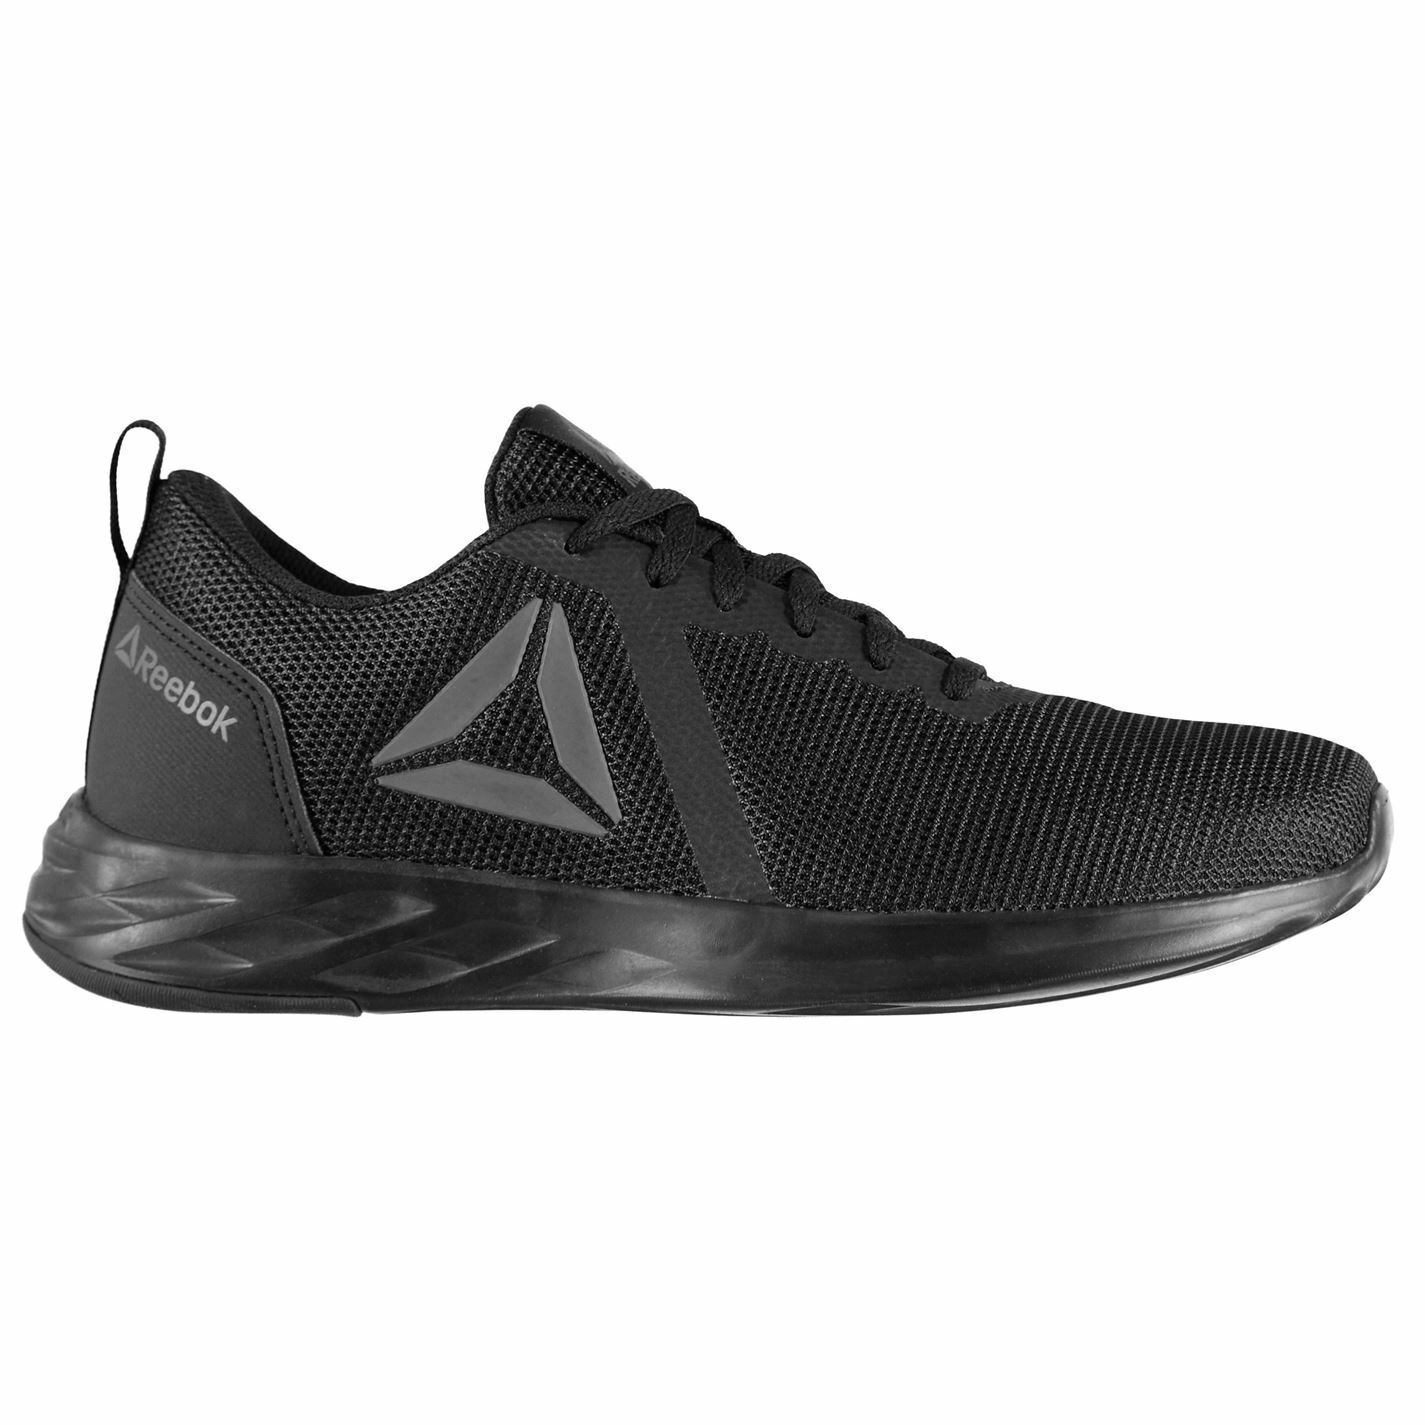 Reebok Mens Astro Ride Essential Trainers Sports Sports Sports schuhe Runners Lace Up d6a59a